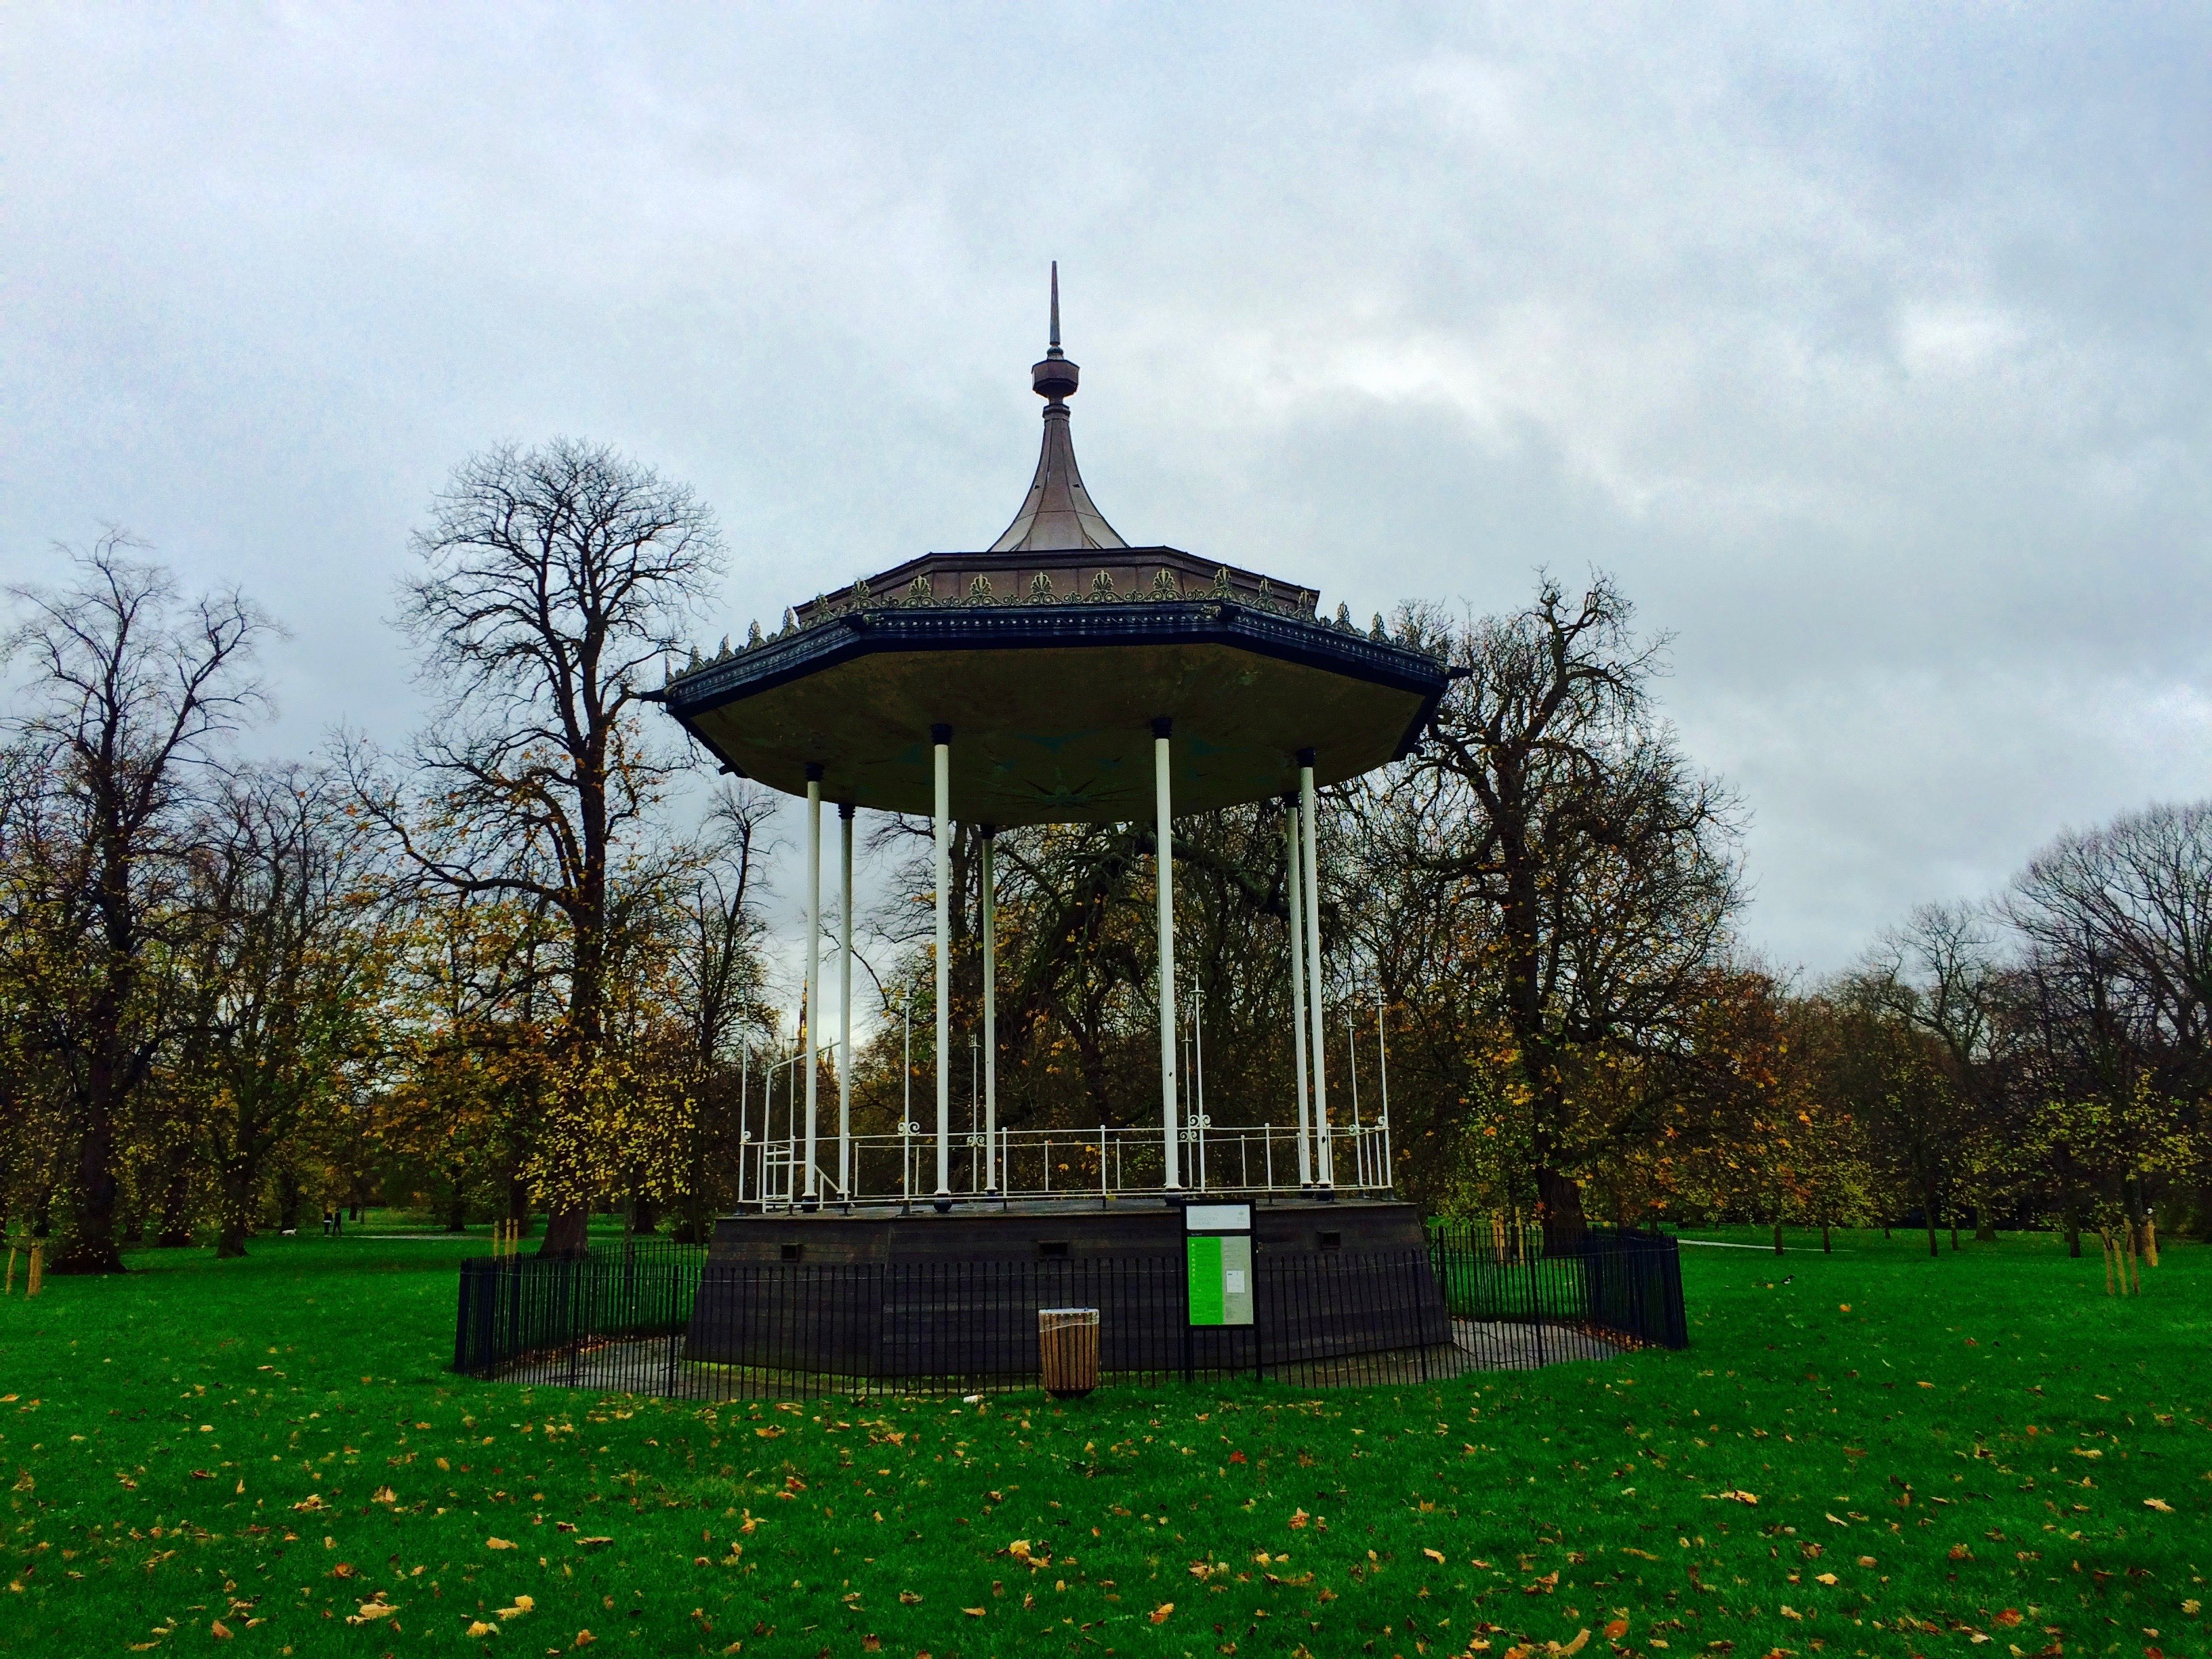 Band Stand in Cloud | Courtesy of Molly Moody